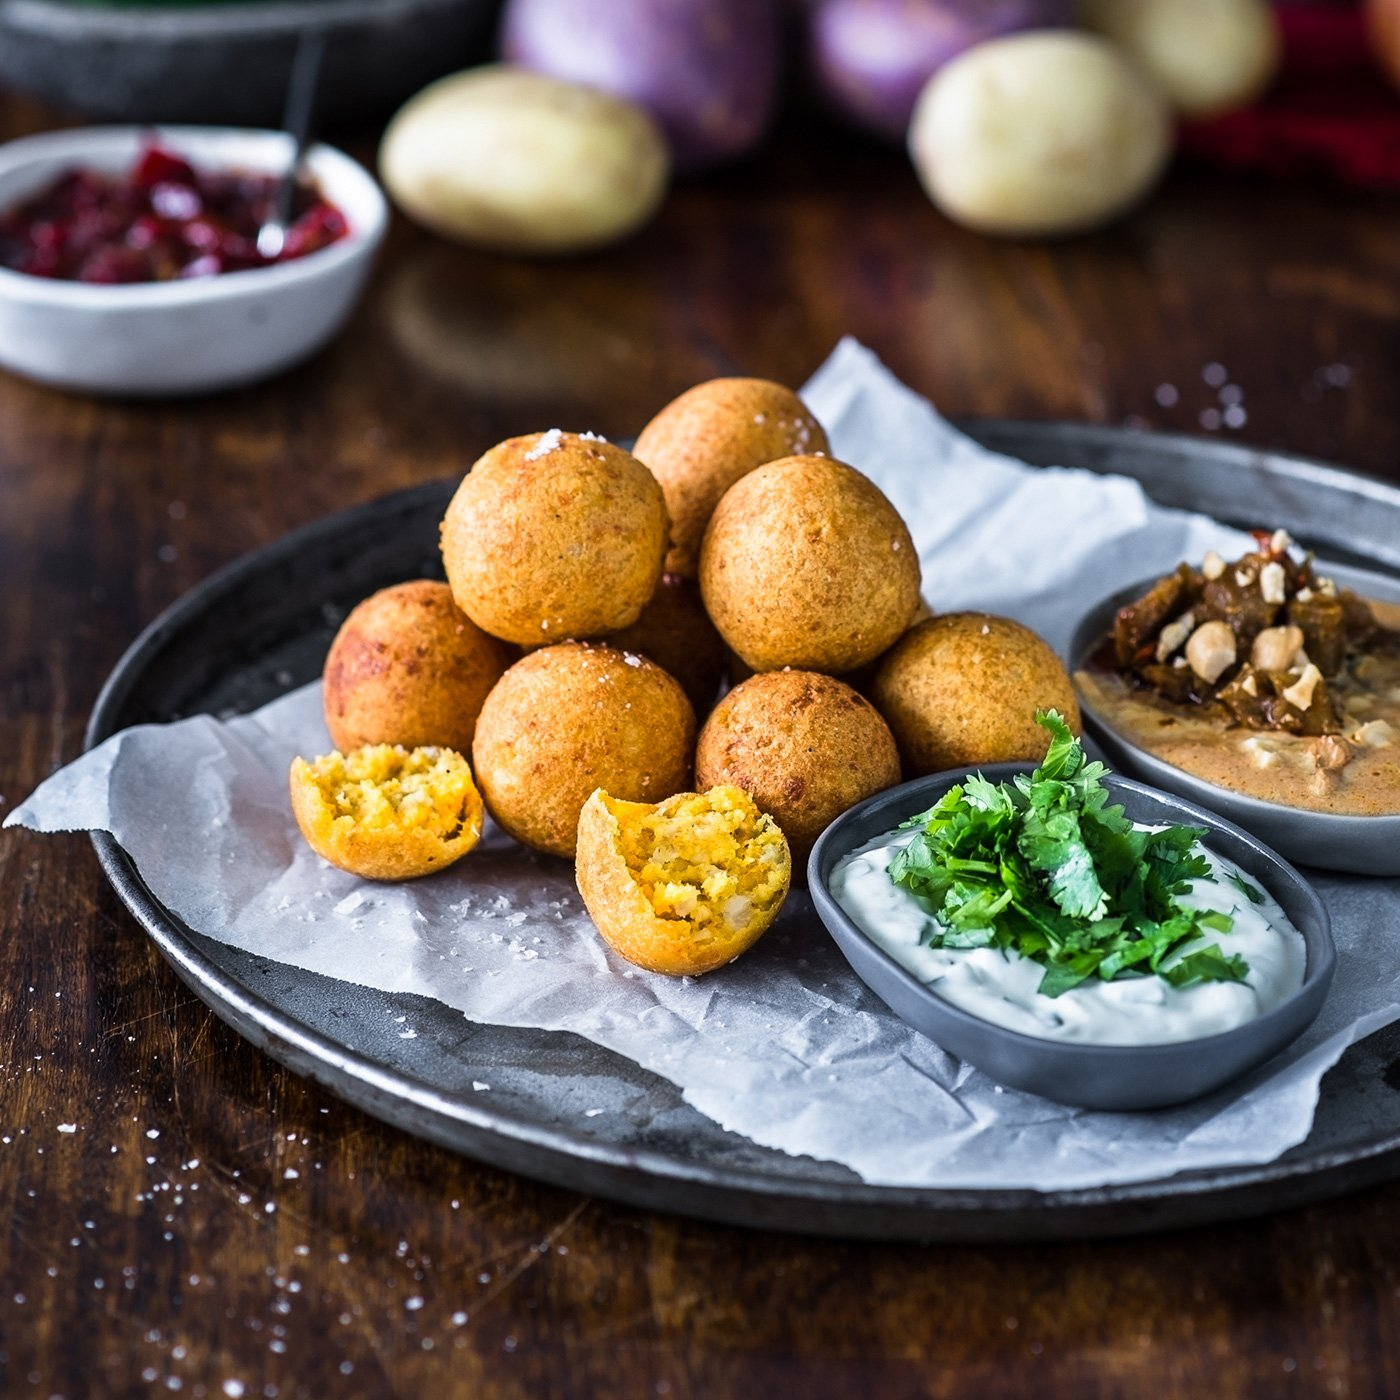 TURBAN CHOPSTICKS Little Bites Potato Ricotta Balls Lifestyle